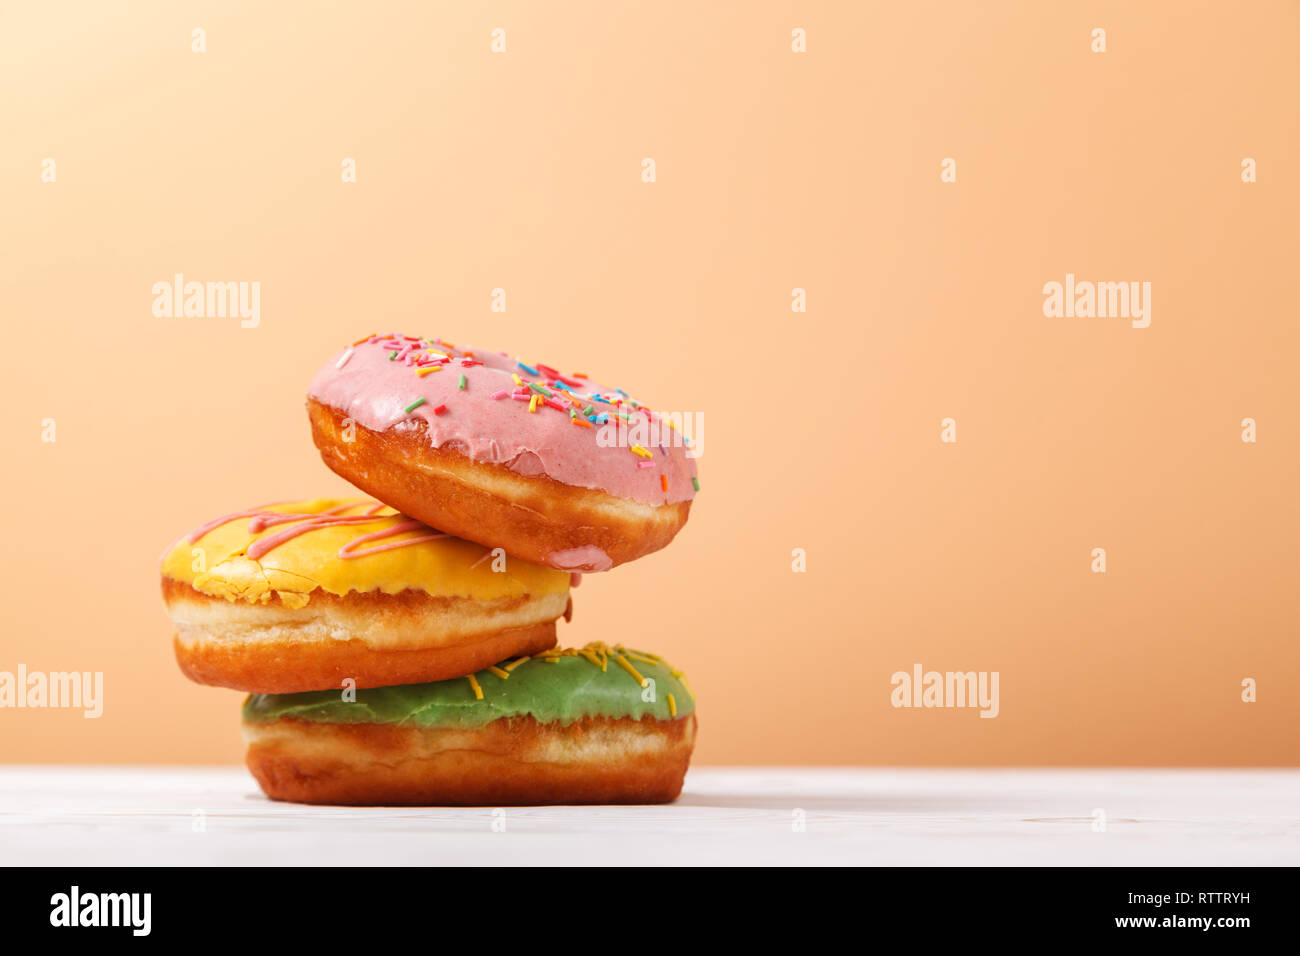 three appetizing multi colored donuts on a plain background of beige peach color copy space the concept of serving sweets in the bakery hanukkah ba stock photo alamy https www alamy com three appetizing multi colored donuts on a plain background of beige peach color copy space the concept of serving sweets in the bakery hanukkah ba image239032181 html